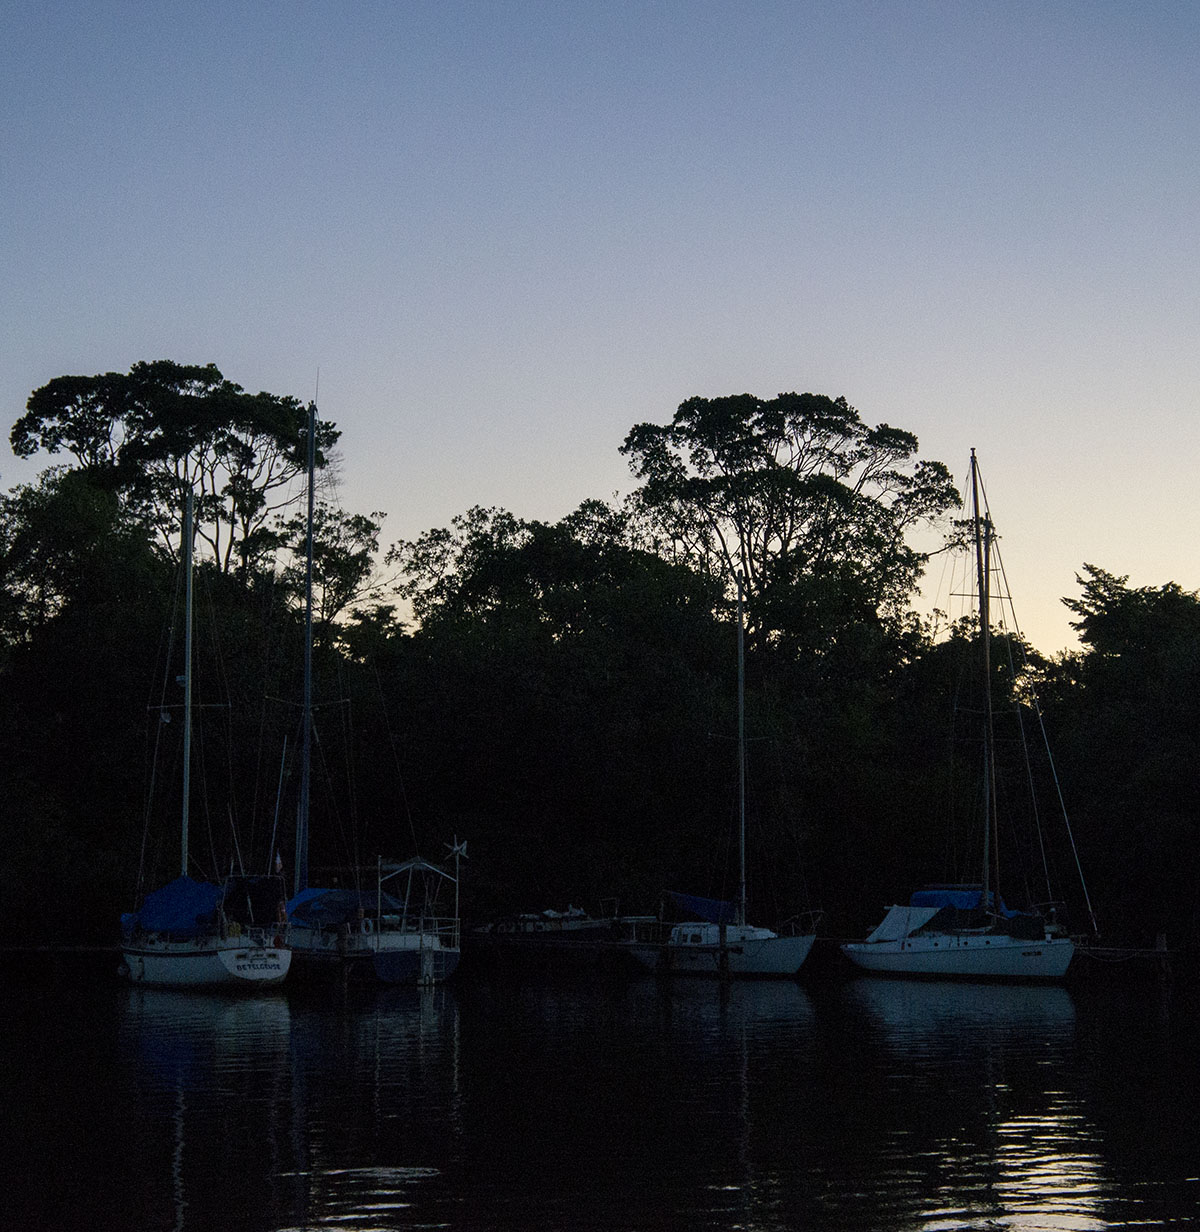 boats in Texan Bay at Sunset